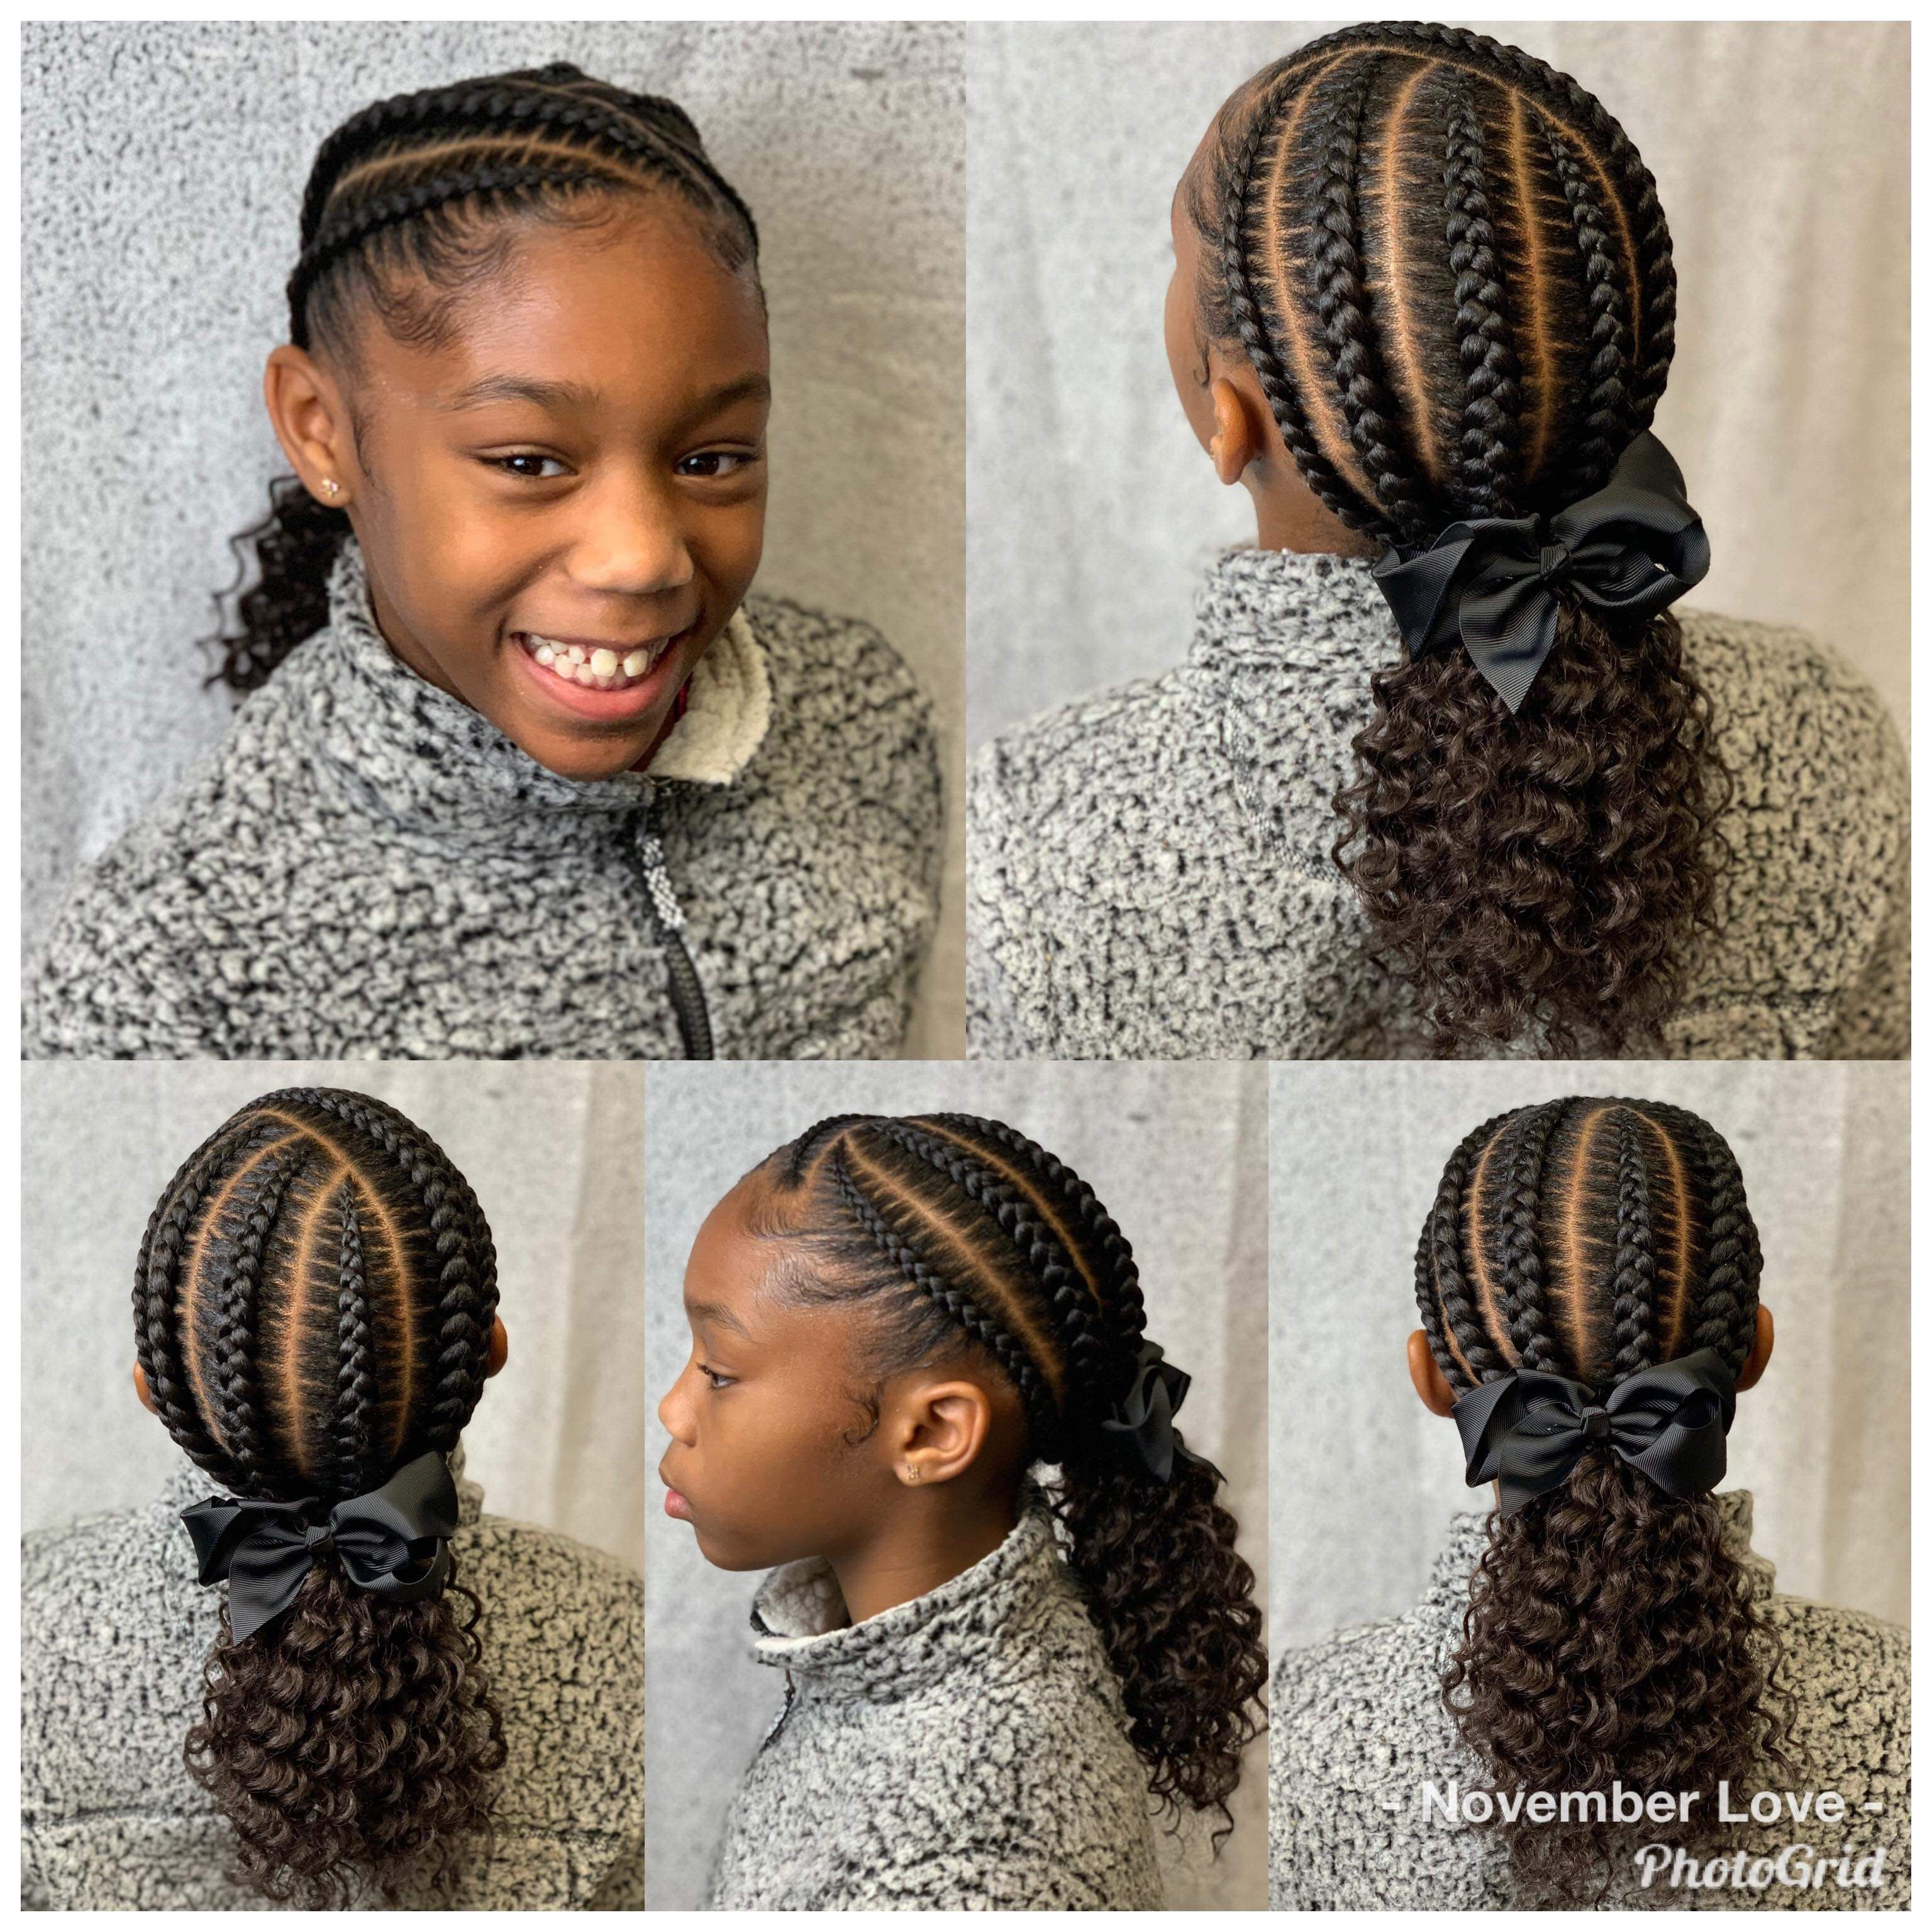 pin by petrese chisolm on maddie's hairstyles in 2019